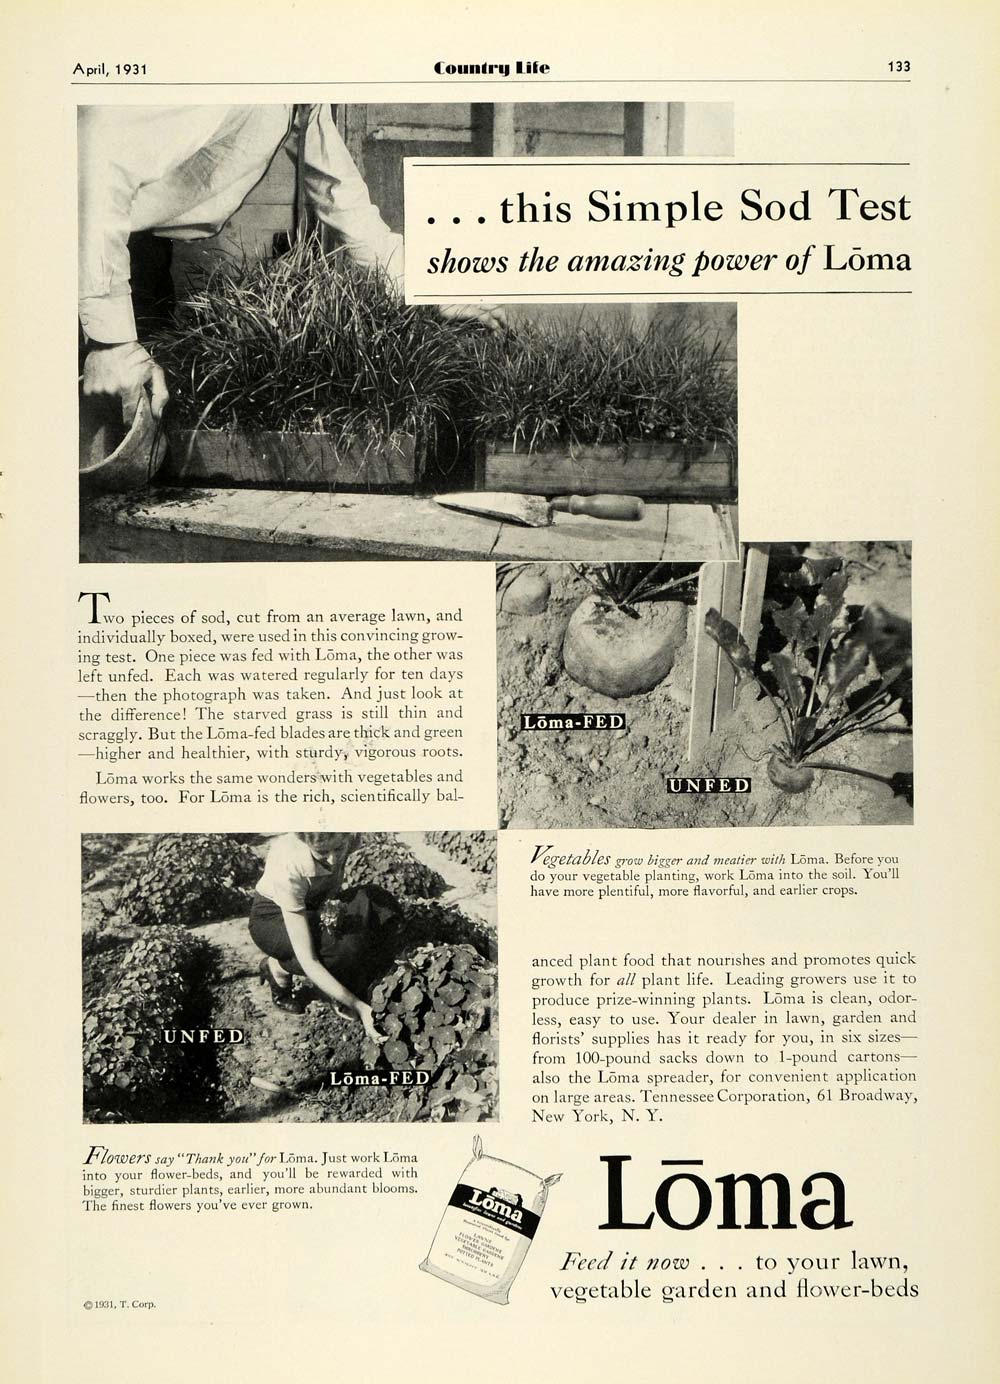 1931 Ad Loma Home Sod Garden Planting Lawn Care Maintenance Crop Fertilizer COL2